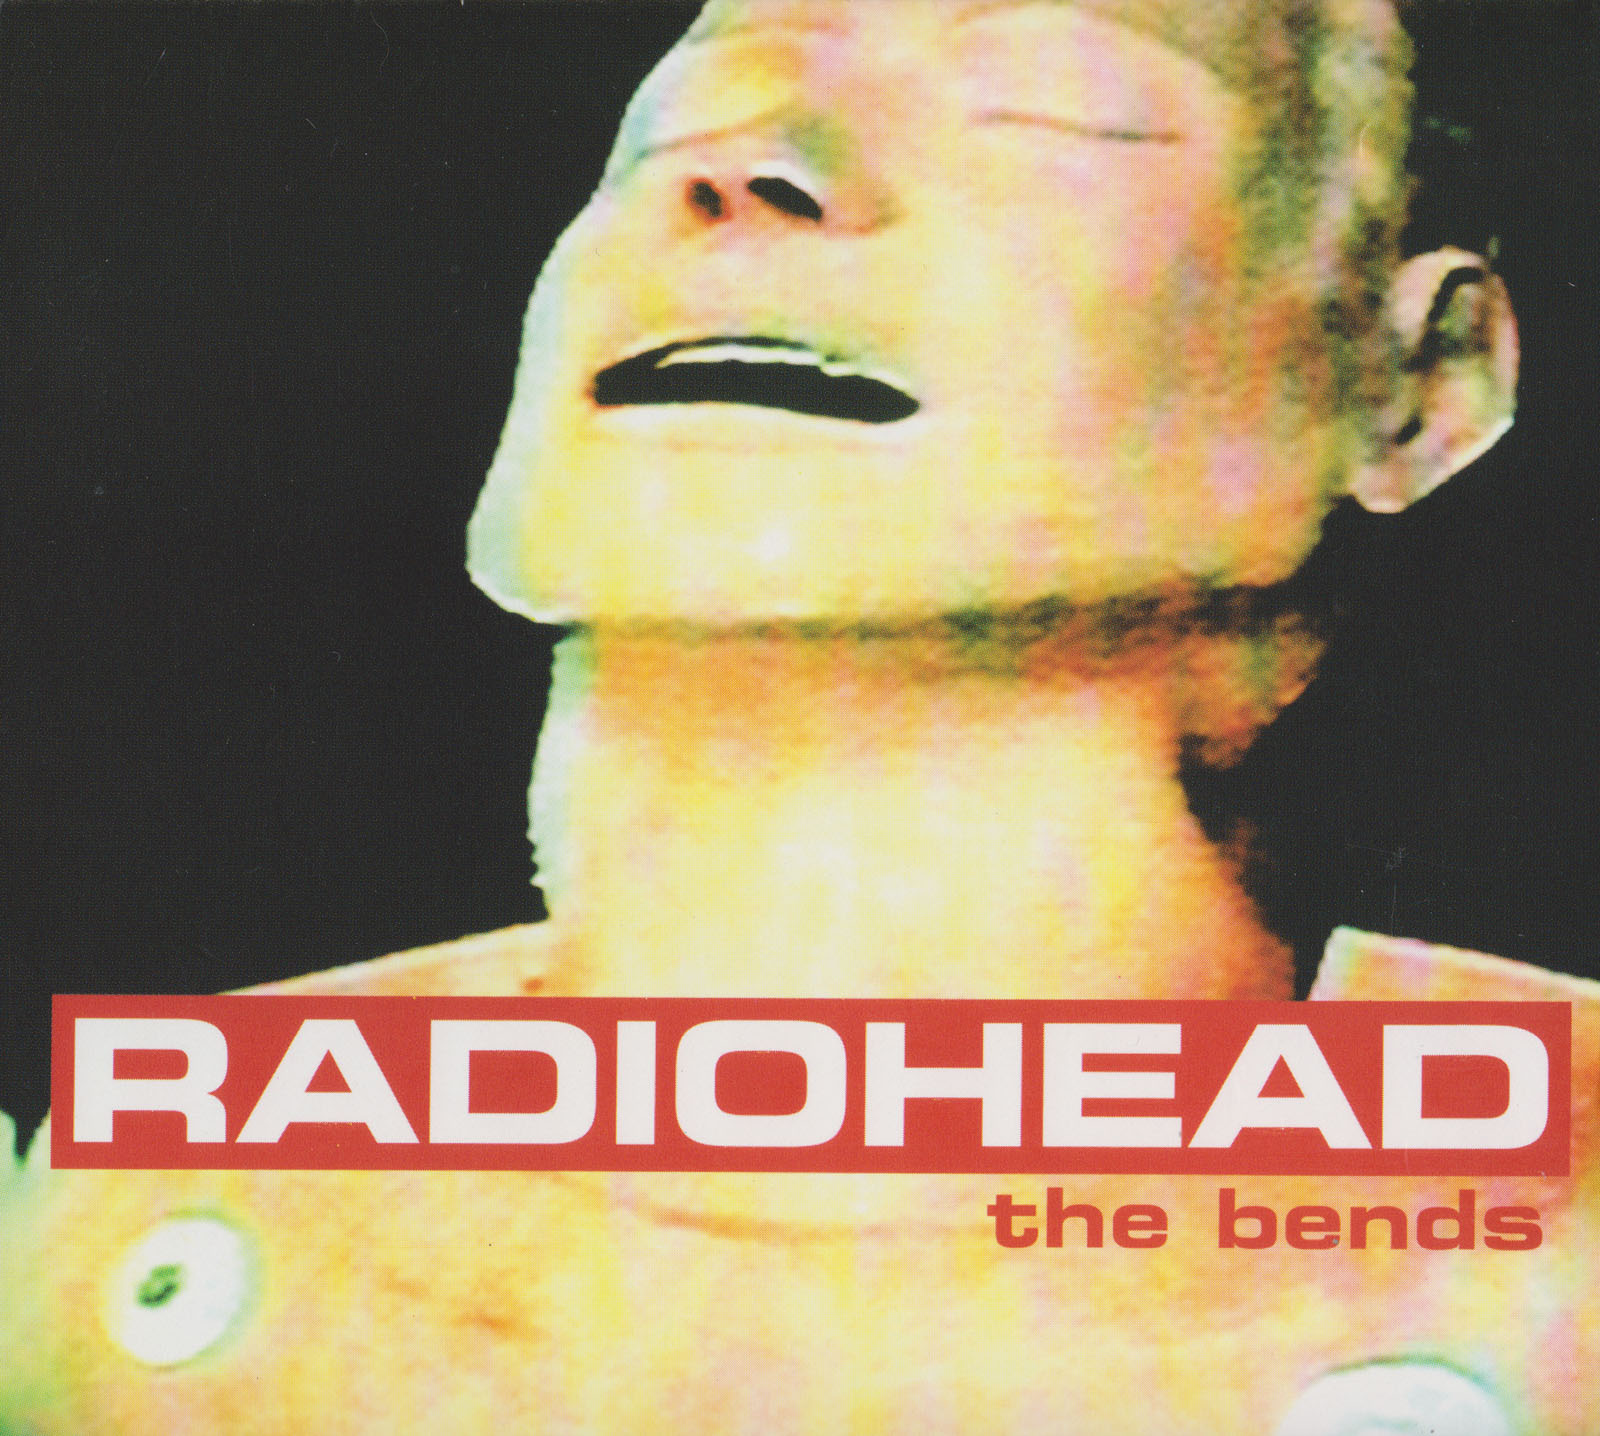 Radiohead discography torrent flac   RADIOHEAD Discography (PBTHAL